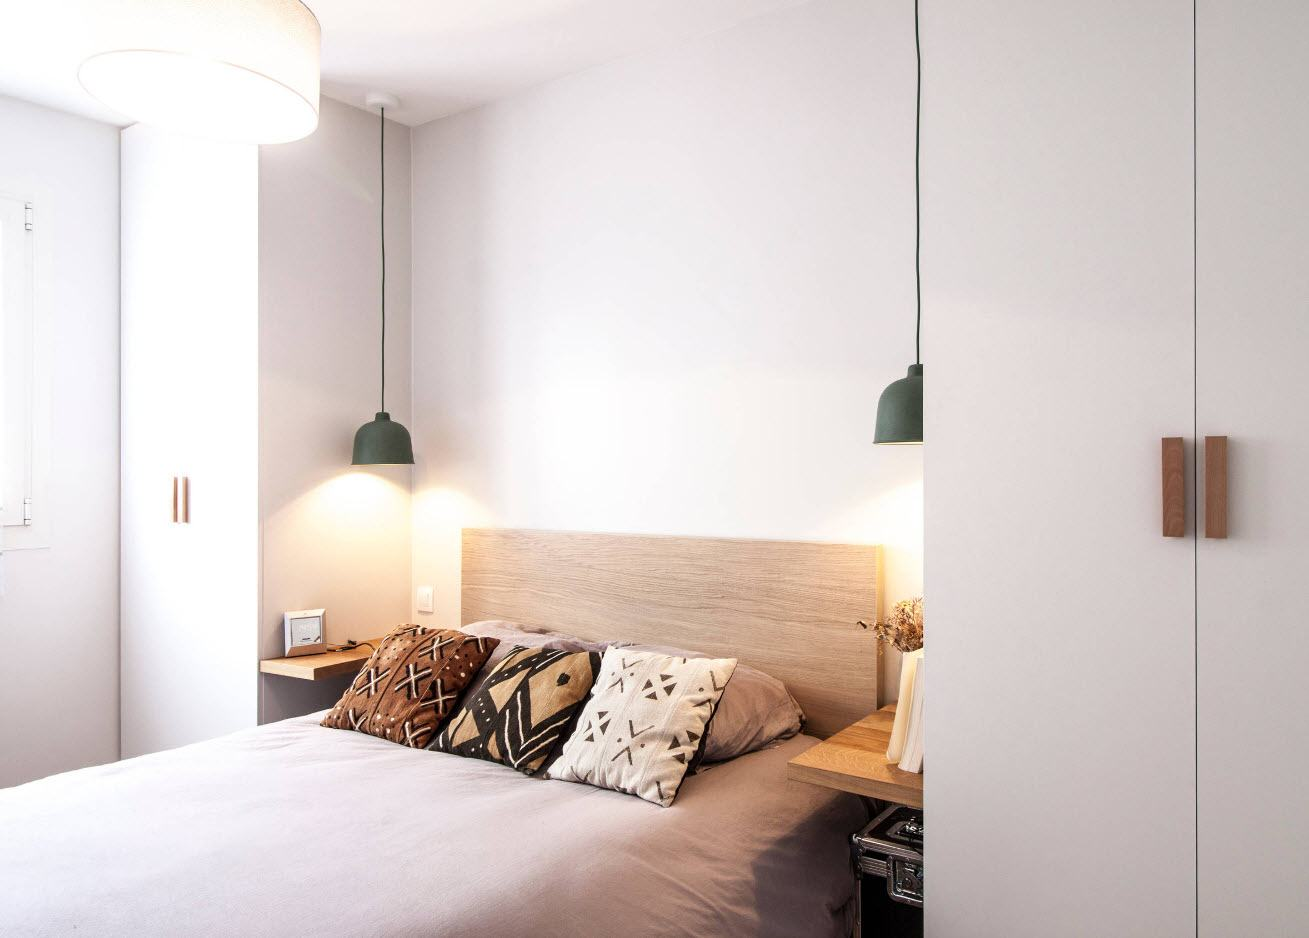 120 Square Feet Bedroom Interior Decoration Ideas. Absolutely white designed walls in minimalistic design